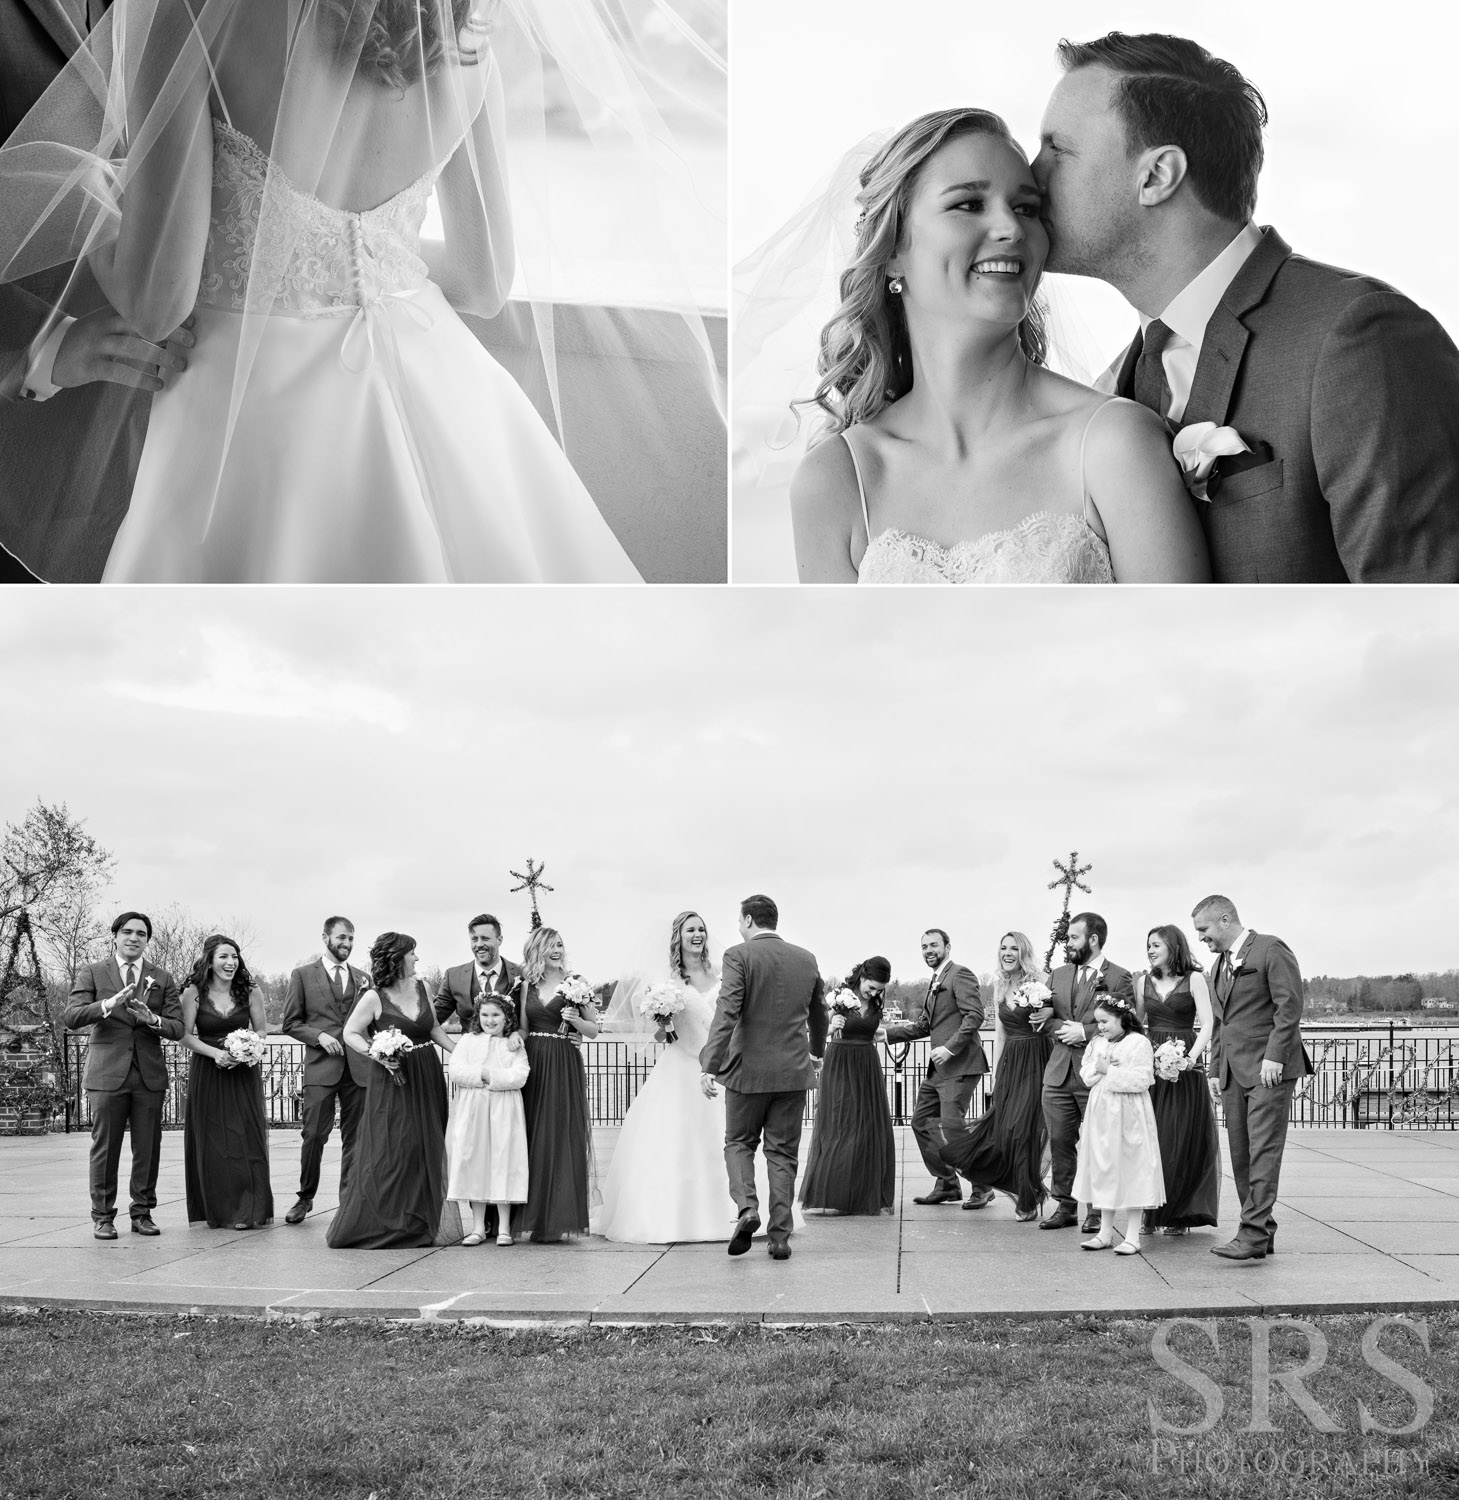 06_srs_photography_sara_stadtmiller_asbury_park_wedding_photography_nj_wedding_photographer_monmouth_county_wedding_photographer_riverside_gardens_red_bank_wedding_the_oyster_point_first_look